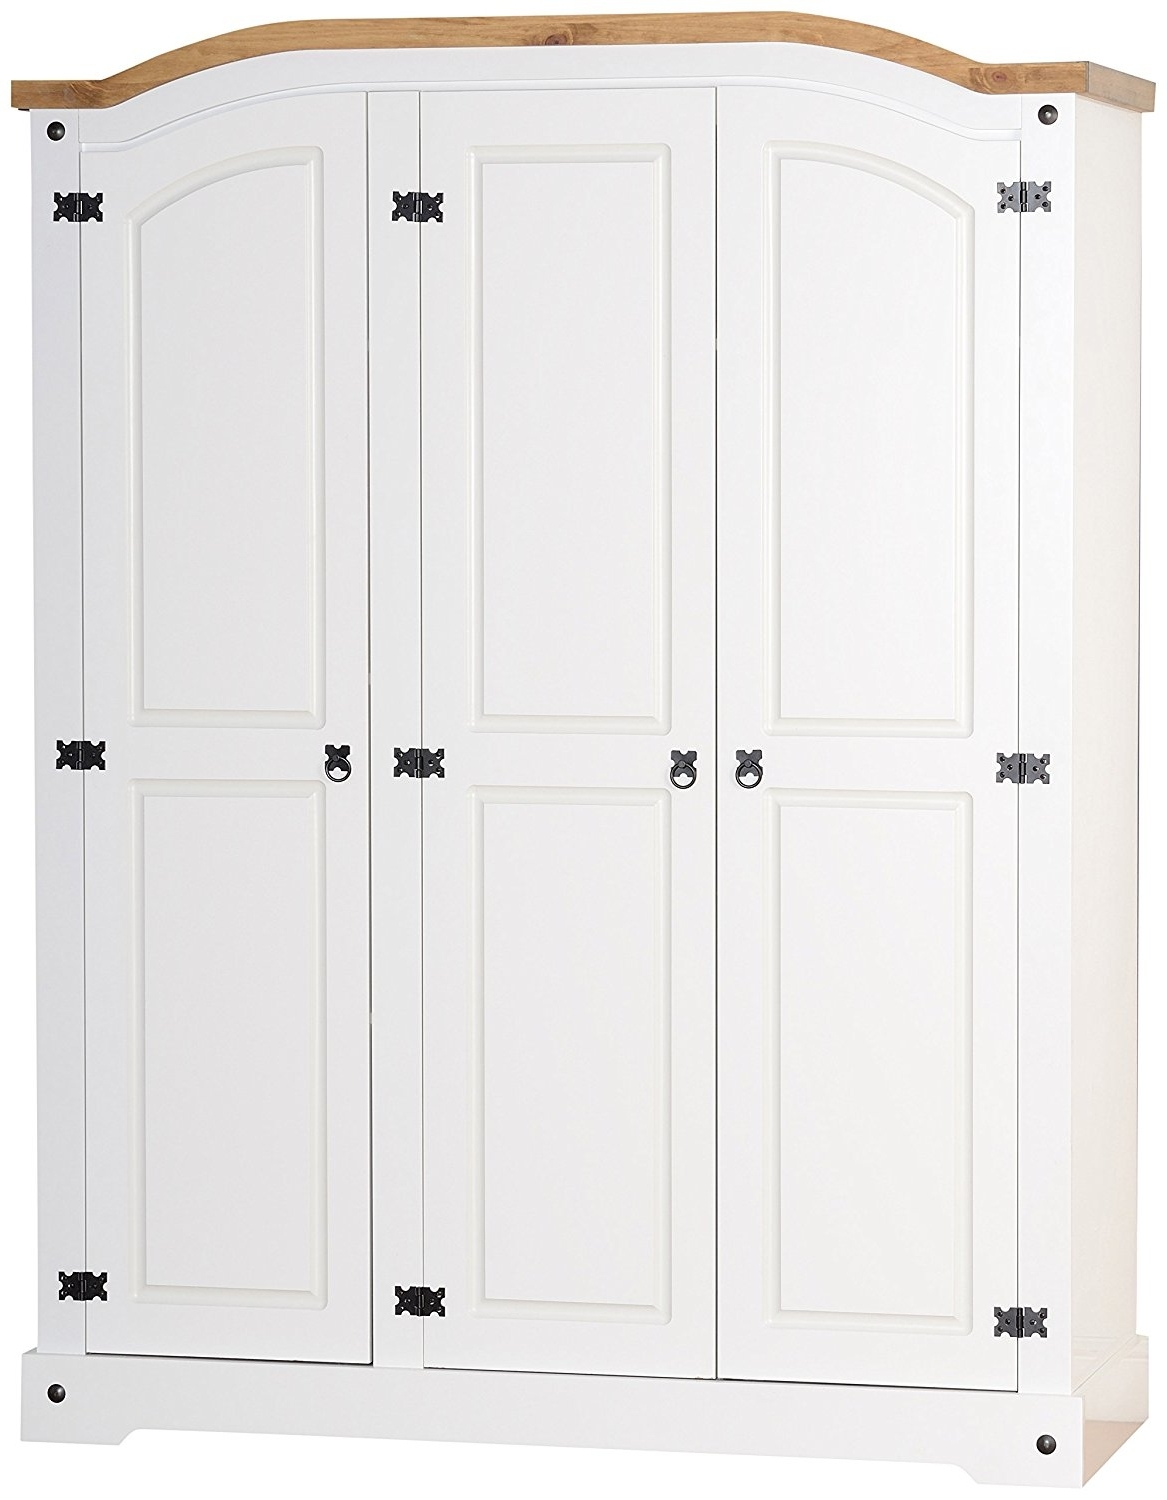 2017 Seconique Corona 3 Door Wardrobe – White/distressed Waxed Pine Regarding Corona 3 Door Wardrobes (View 2 of 15)